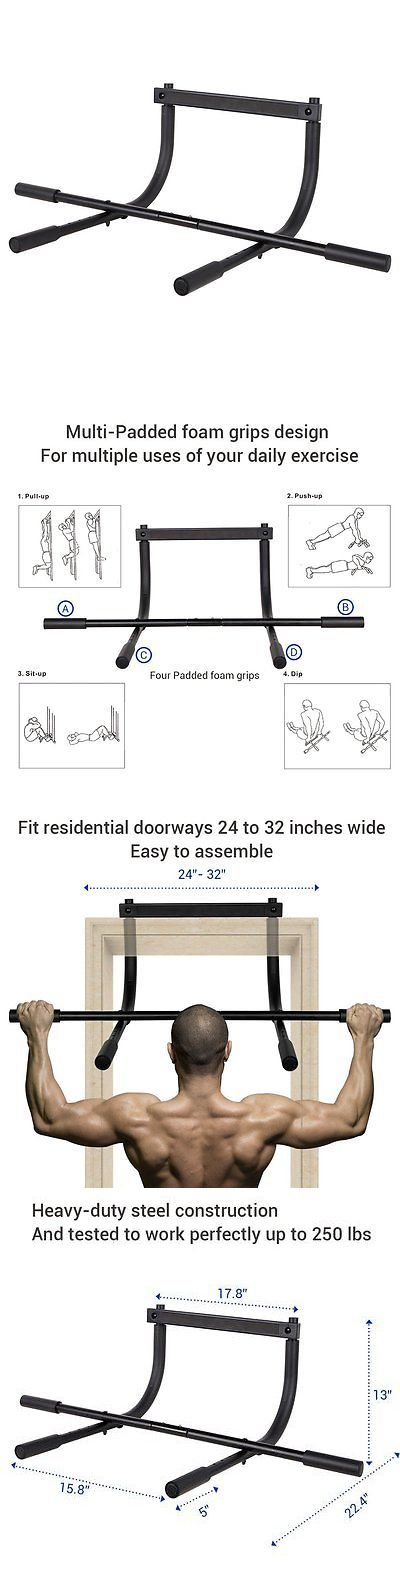 Pull Up Bars 179816: Fitleader Pull Up Bar Body Workout Multi-Grip Exercise Fitness Heavy Duty Doorwa -> BUY IT NOW ONLY: $46.5 on eBay!